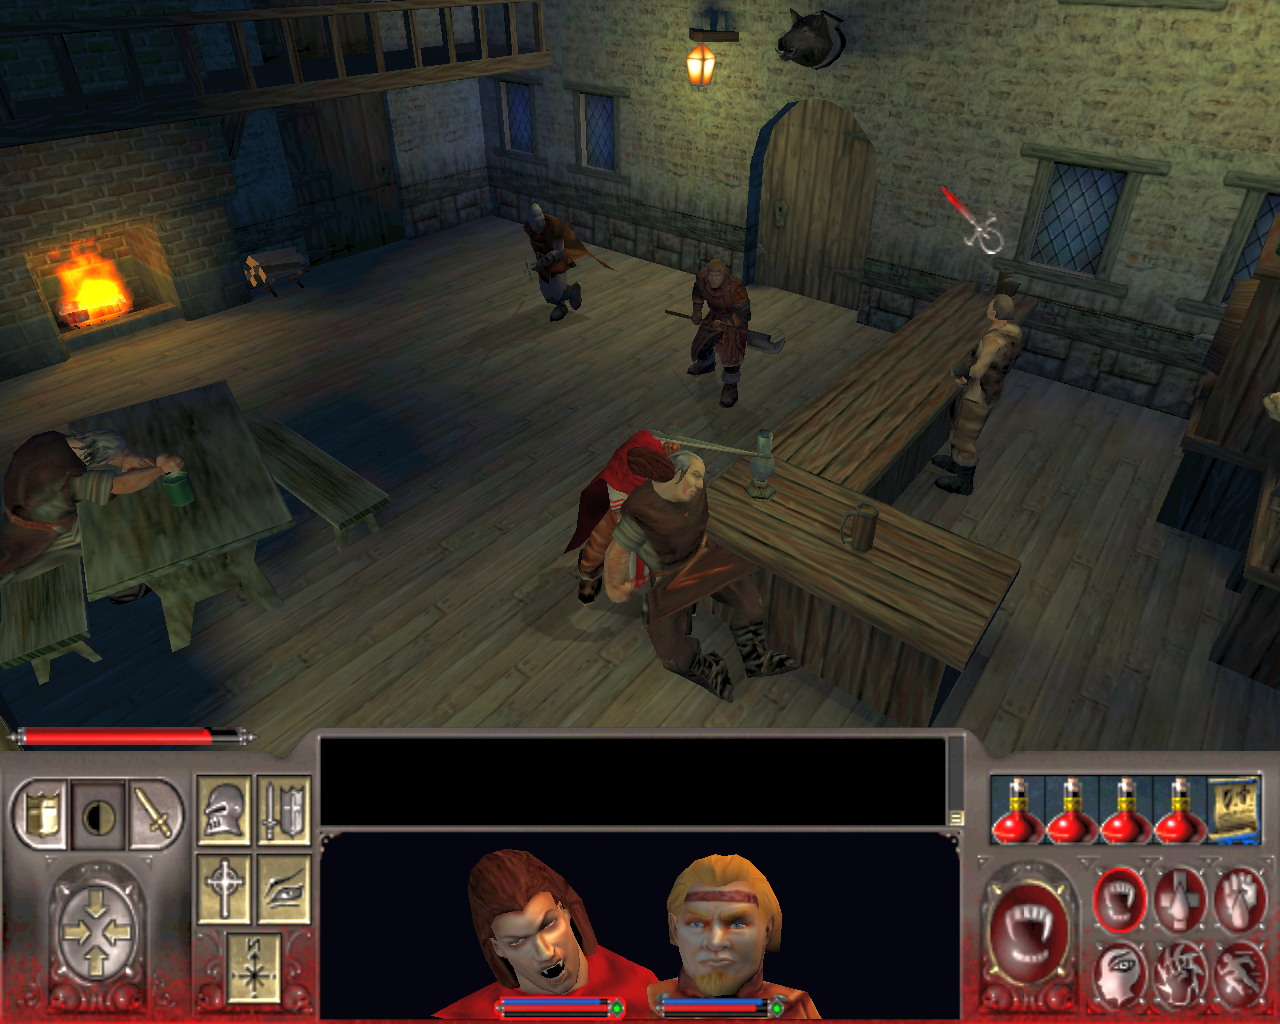 753321-vampire-the-masquerade-redemption-windows-screenshot-there.png